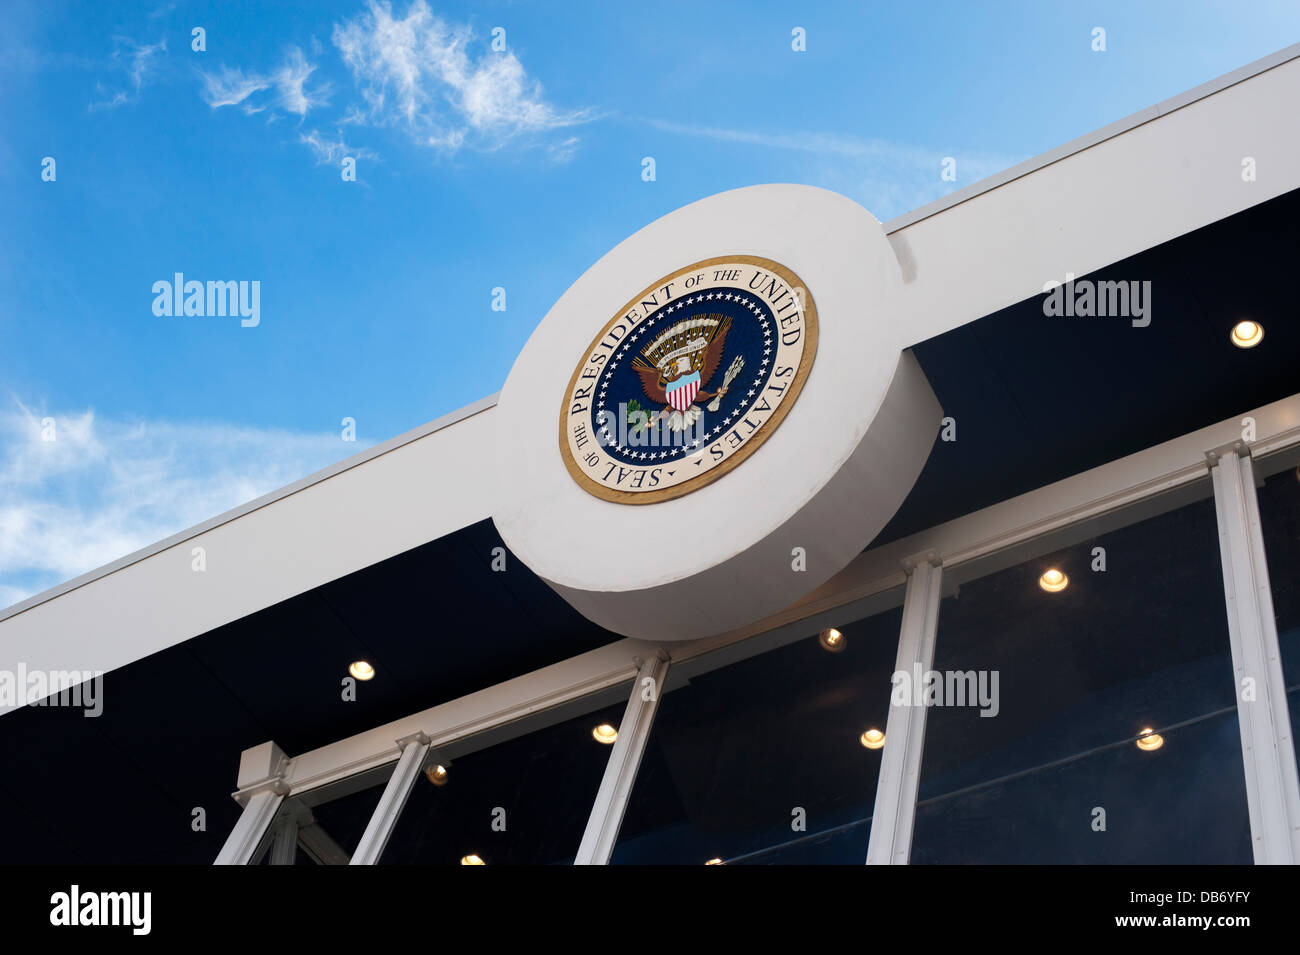 United States Presidential inauguration viewing stand with Presidential Seal, in Washington DC. Stock Photo